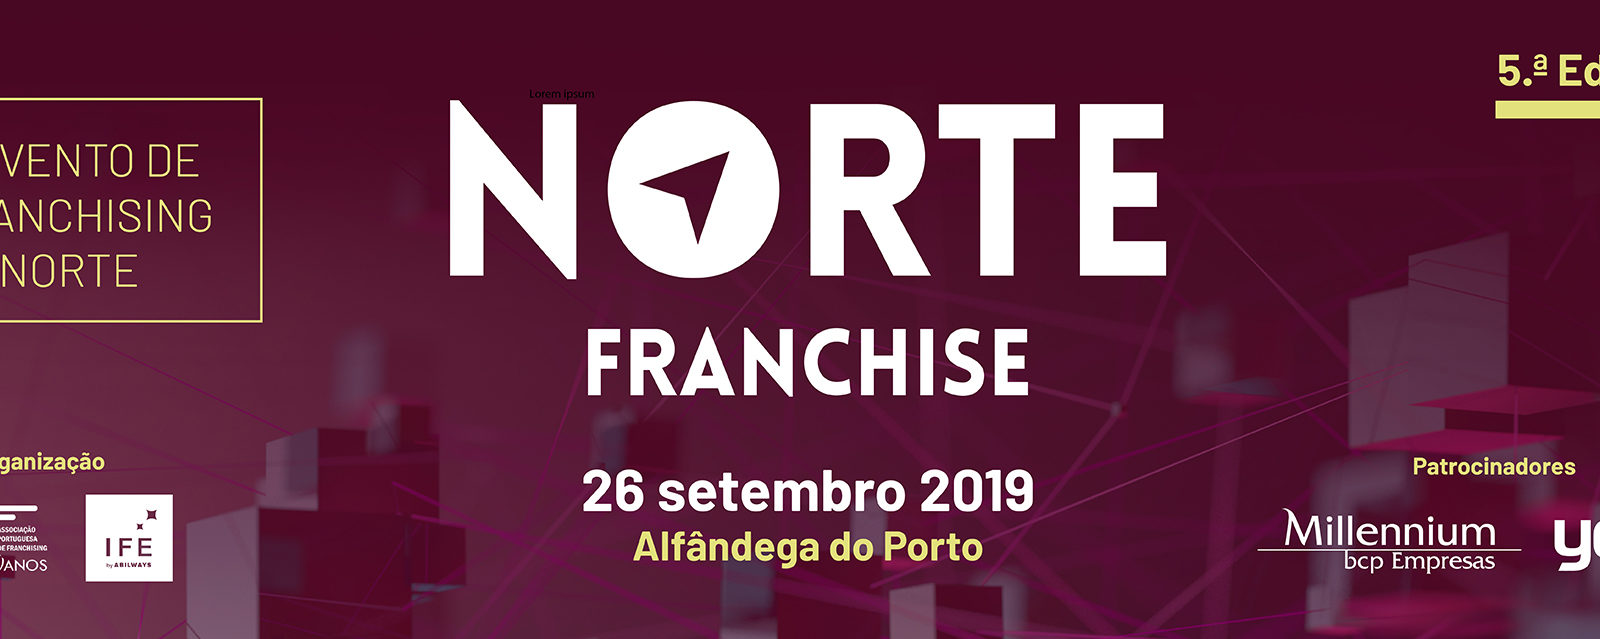 Norte Franchise 2019